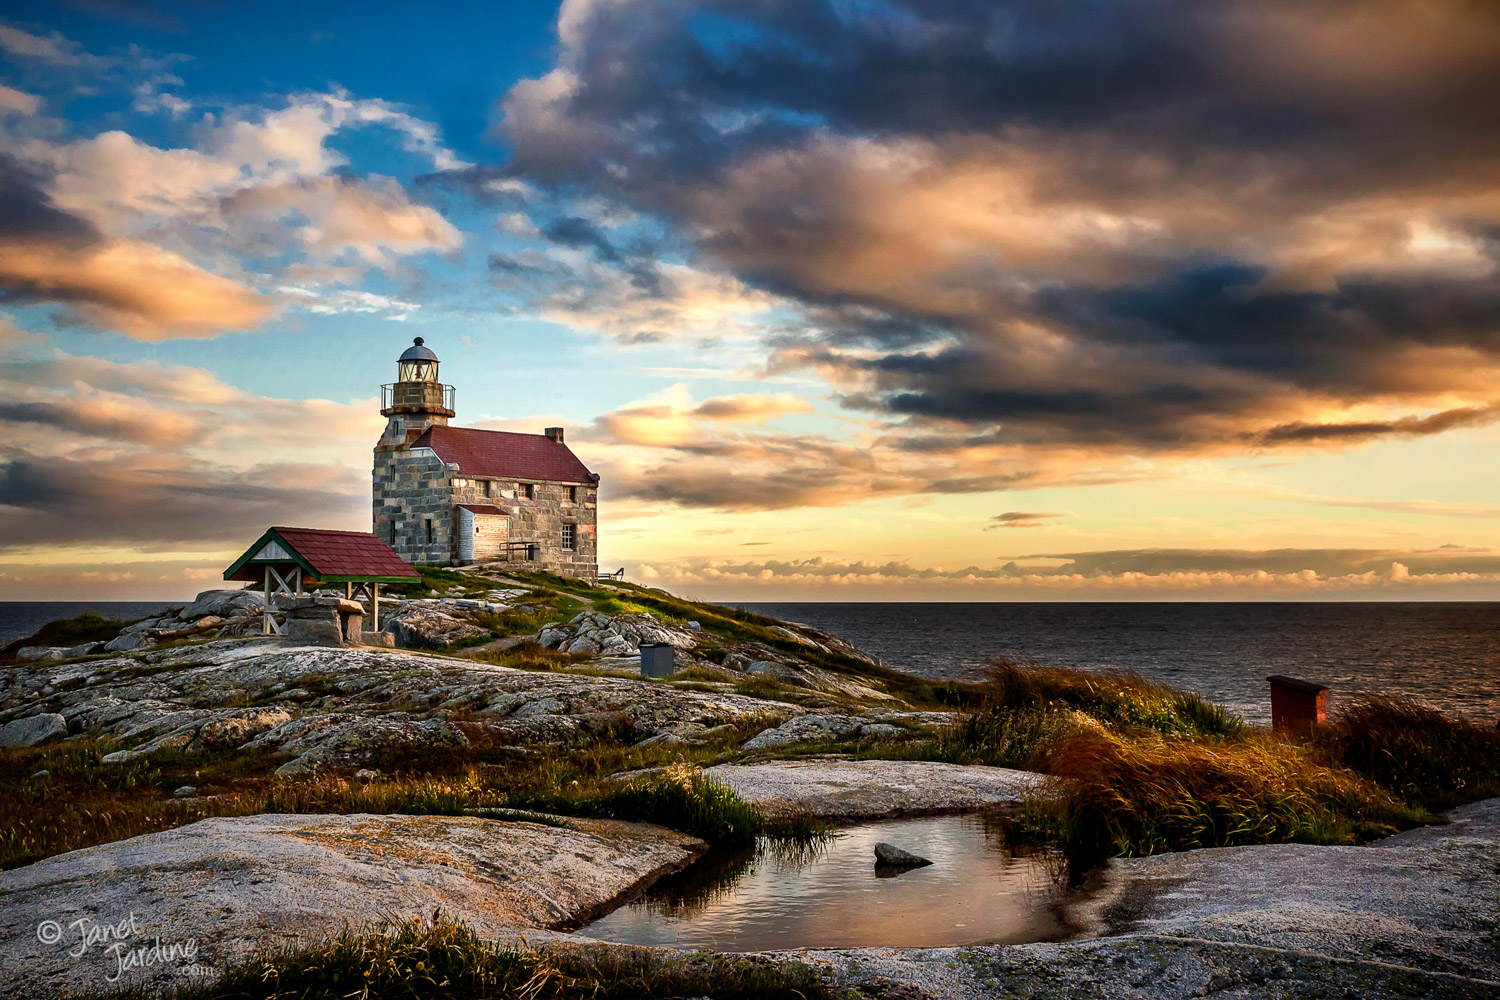 Rose-Blanche-Lighthouse_Photo_copyright_Janet_Jardine_SquareSpace.jpg